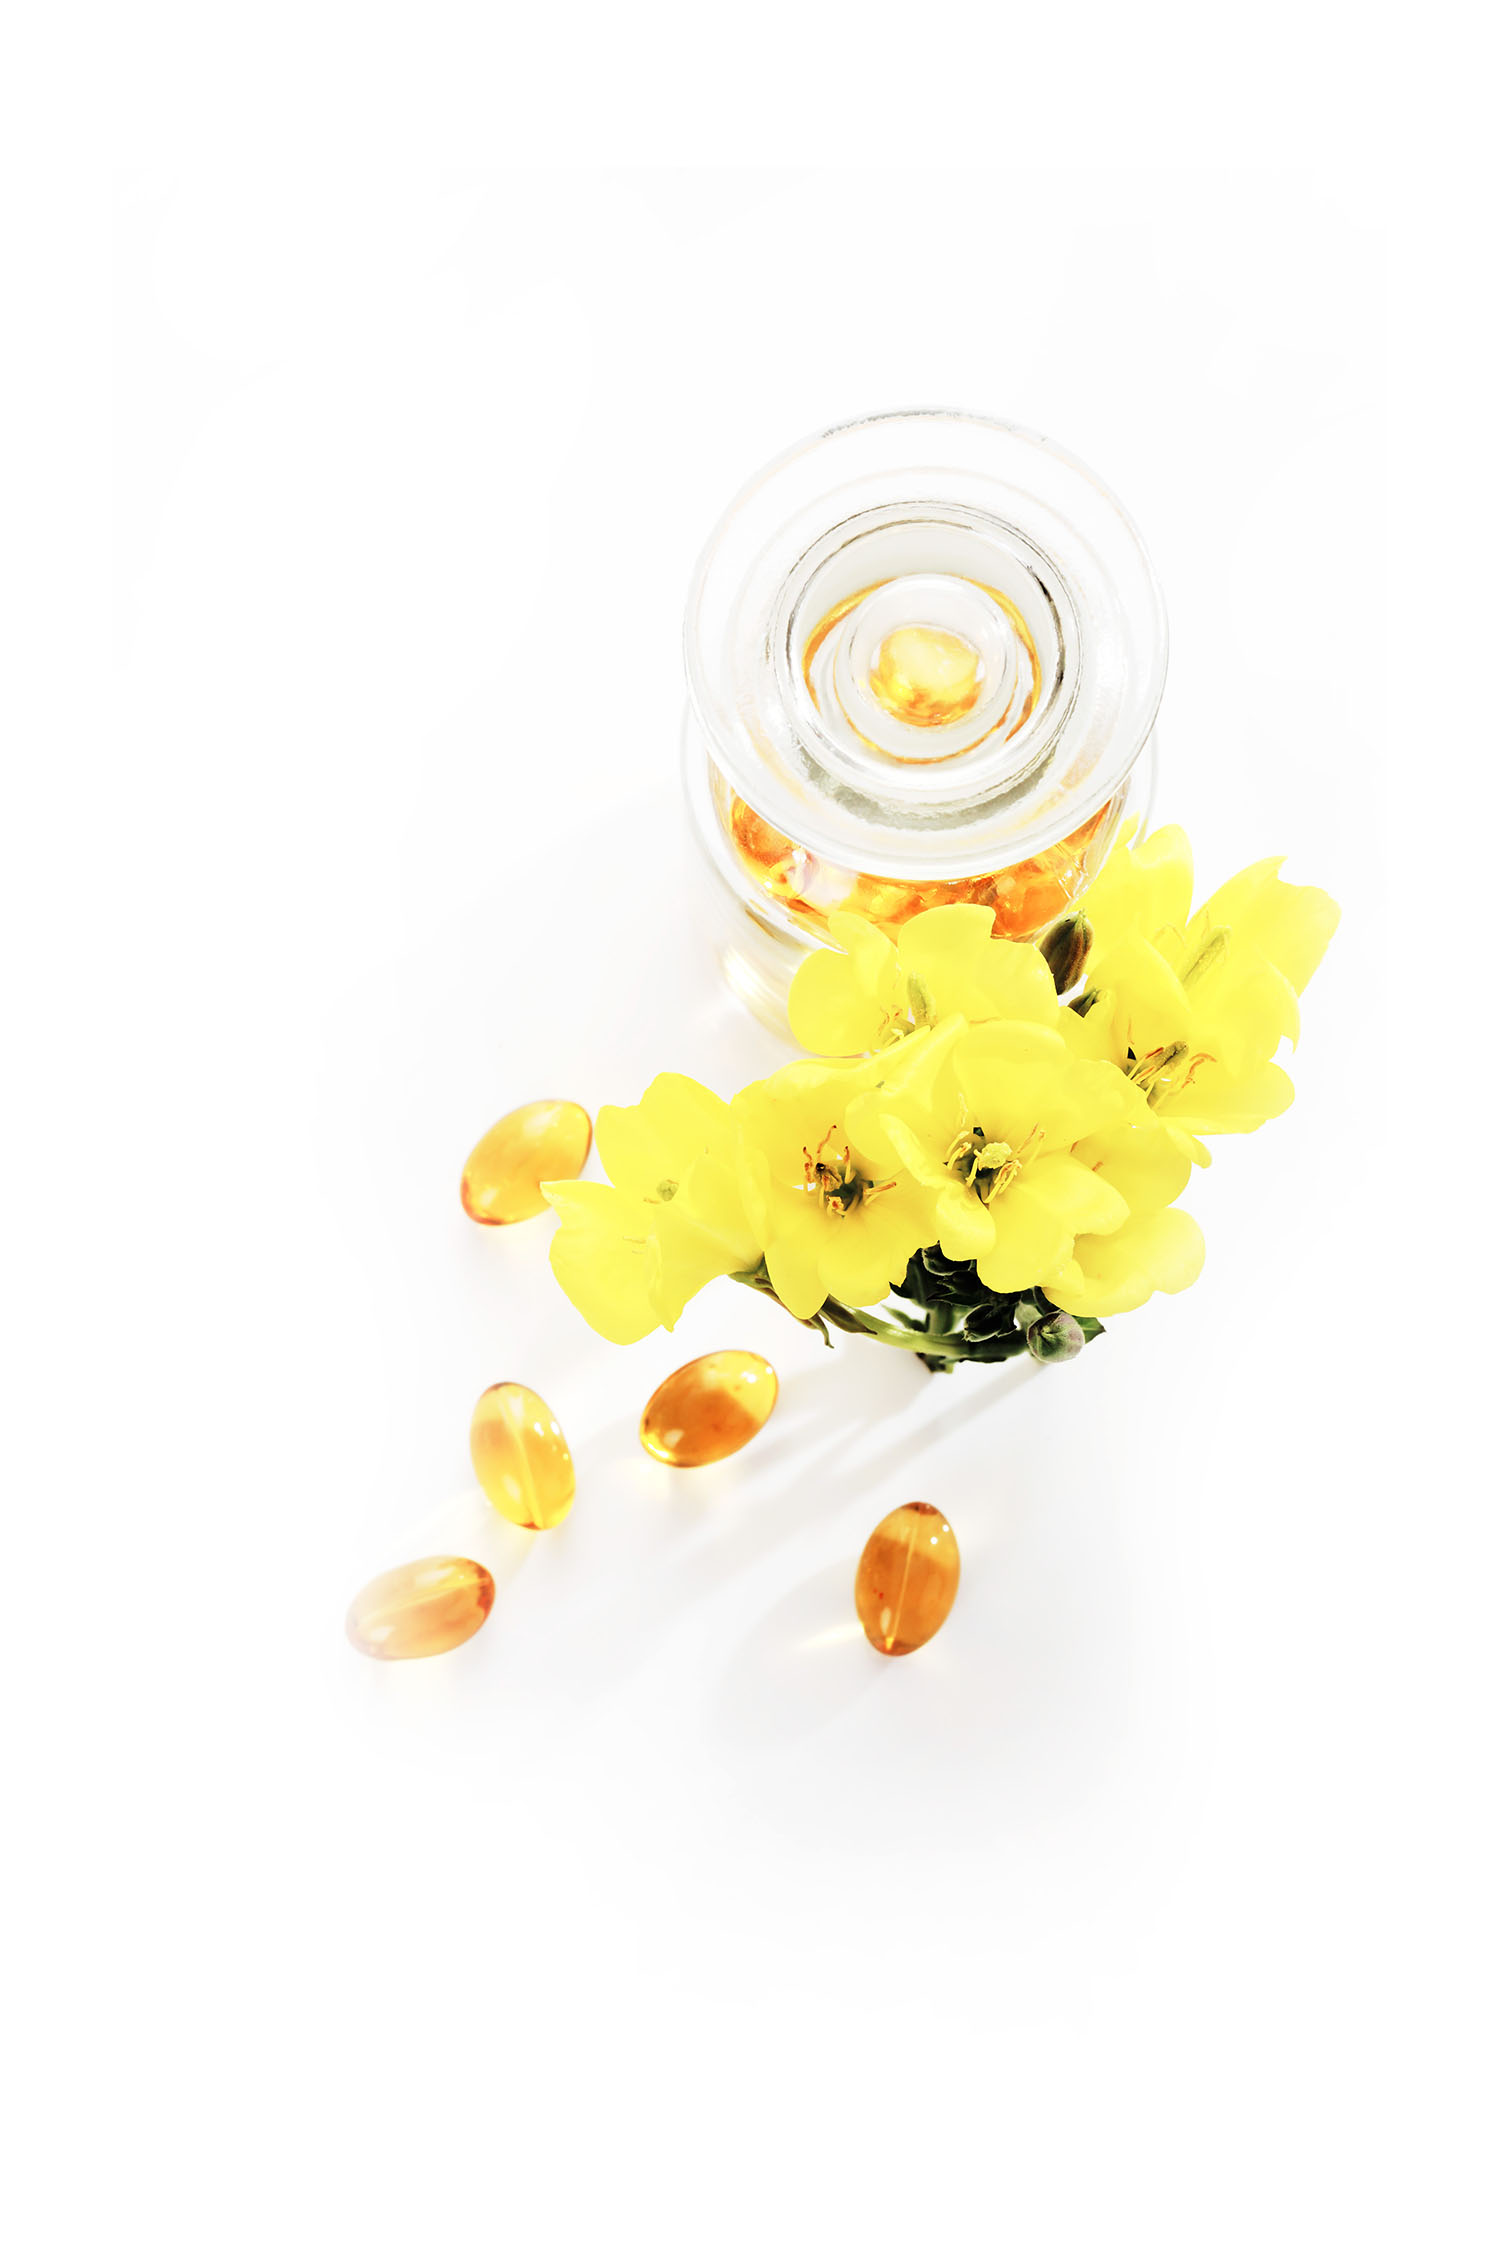 RIWAY's PURTIER Health Supplement Ingredient - Evening Primrose Oil, 干细胞胎盘素保健品成分 - 月见草油